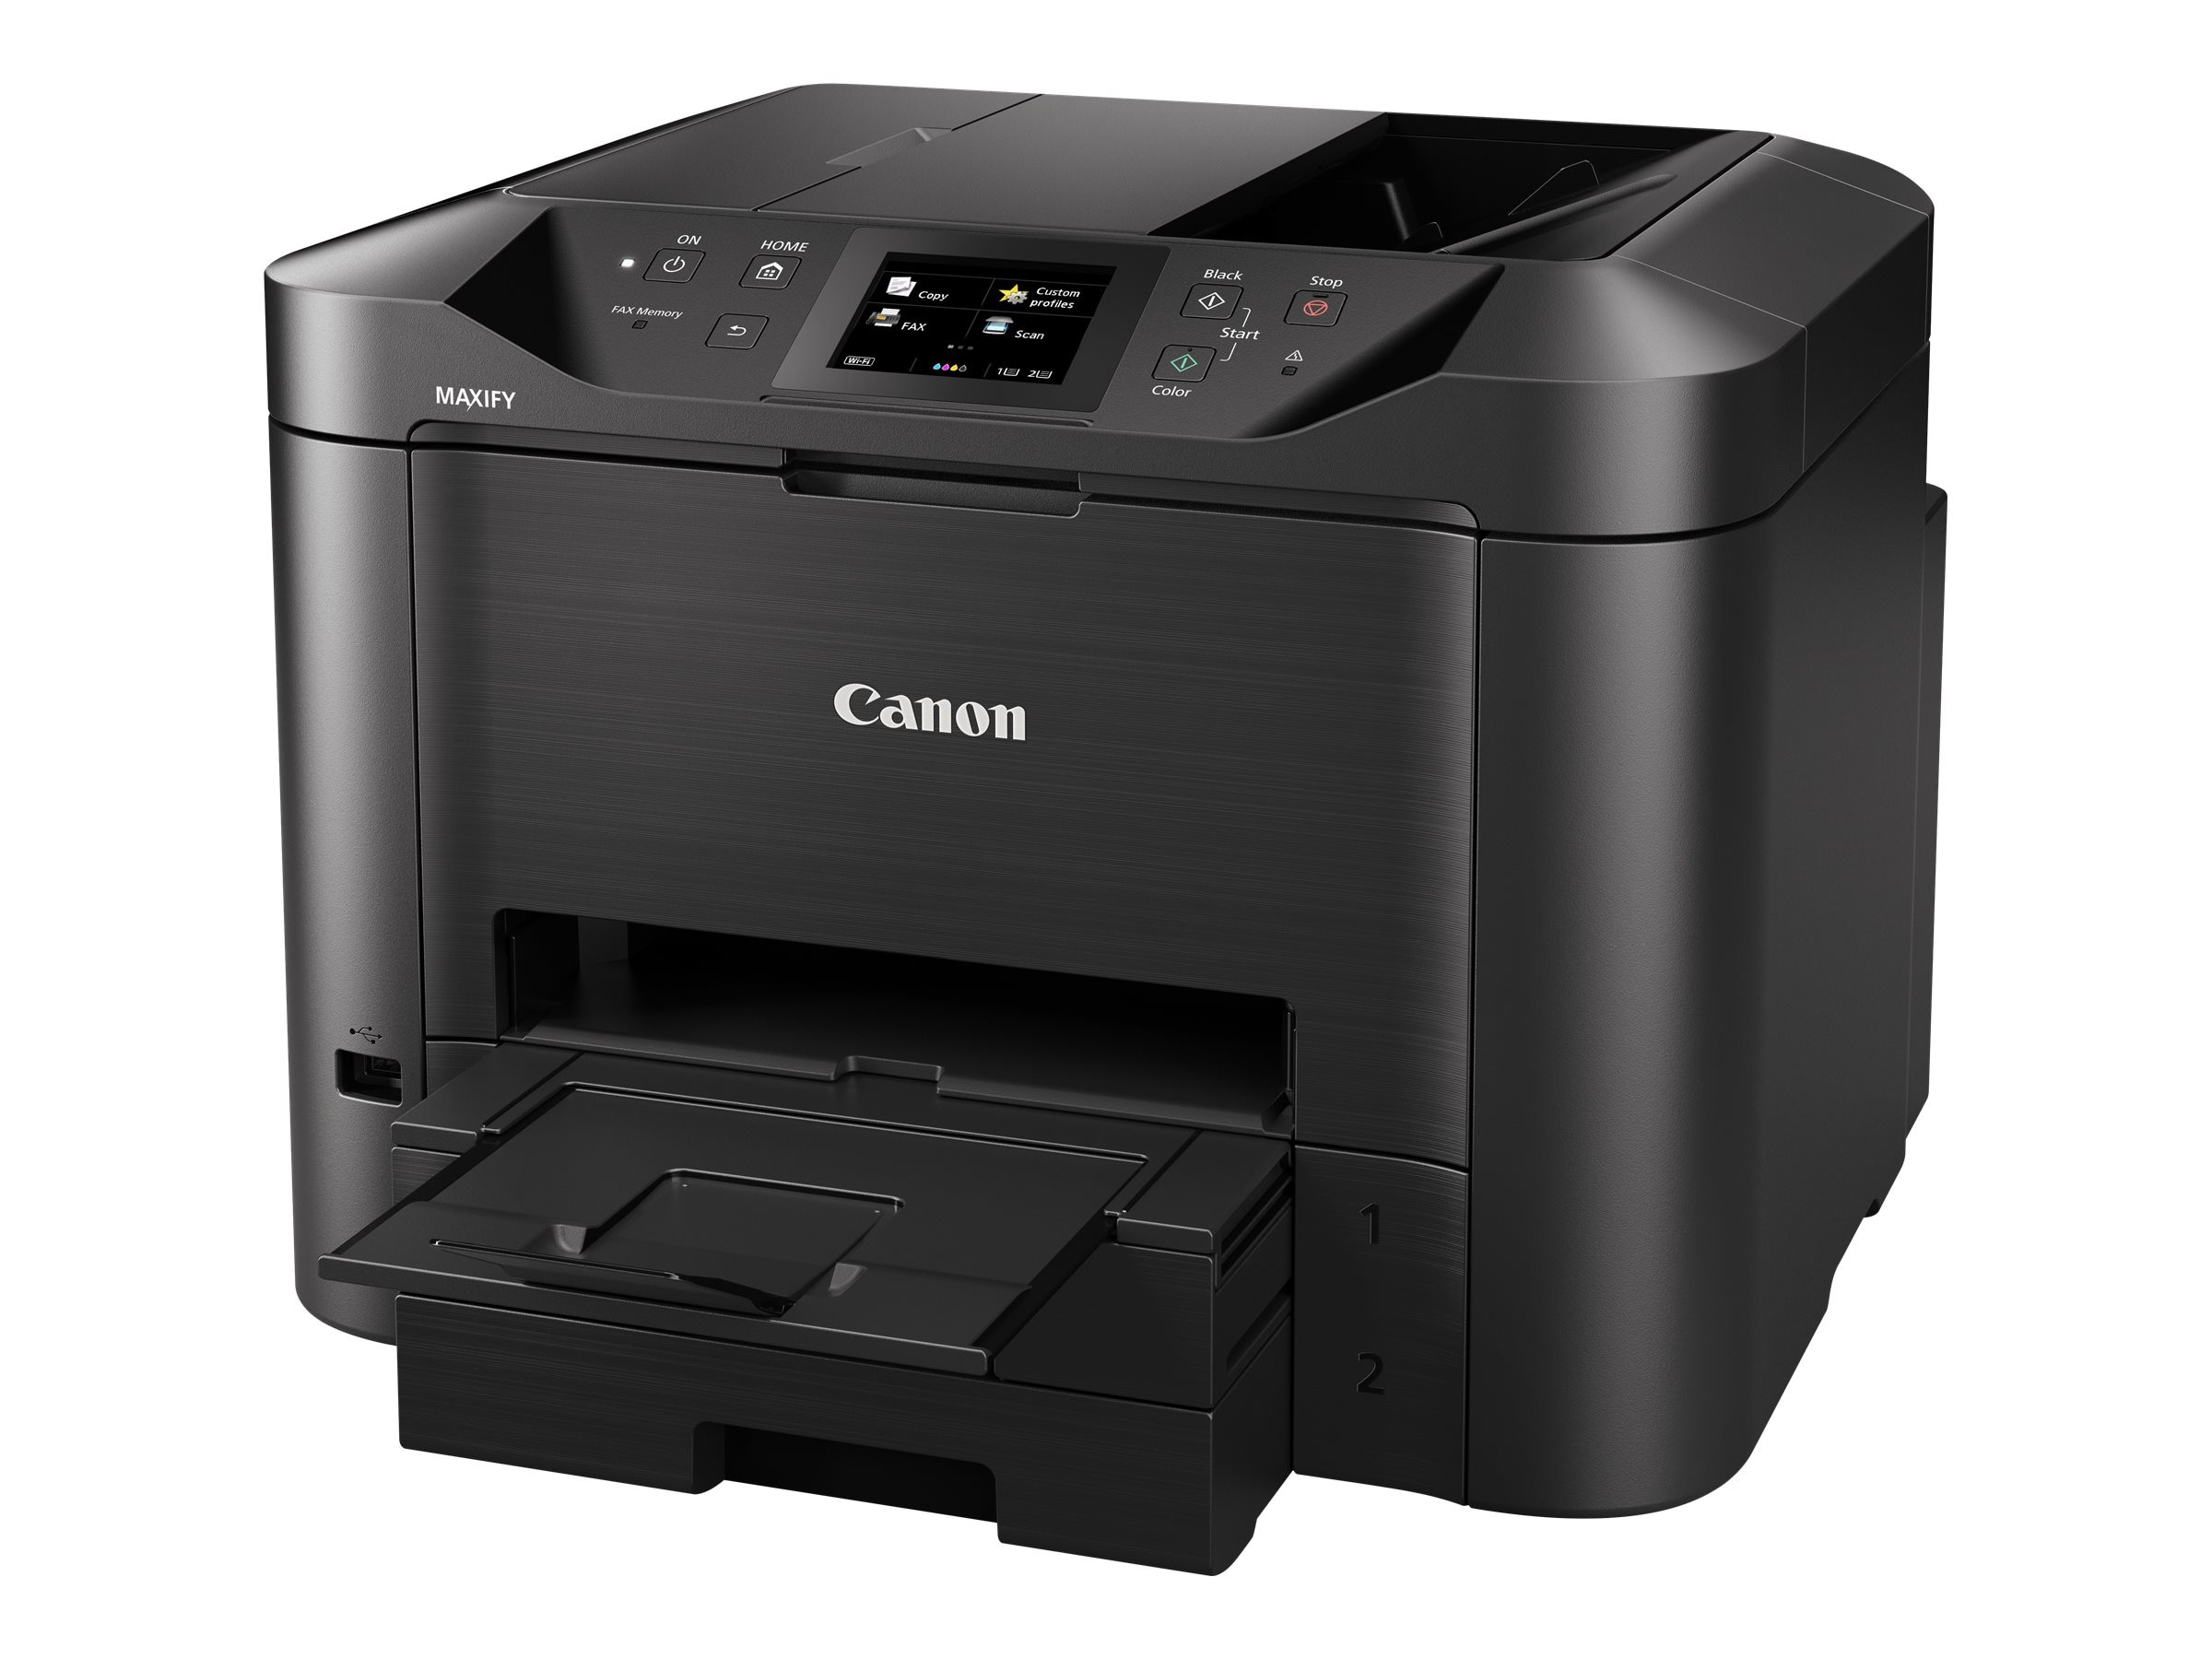 Canon MAXIFY MB5420 Wireless Small Office All-In-One Printer, 0971C002